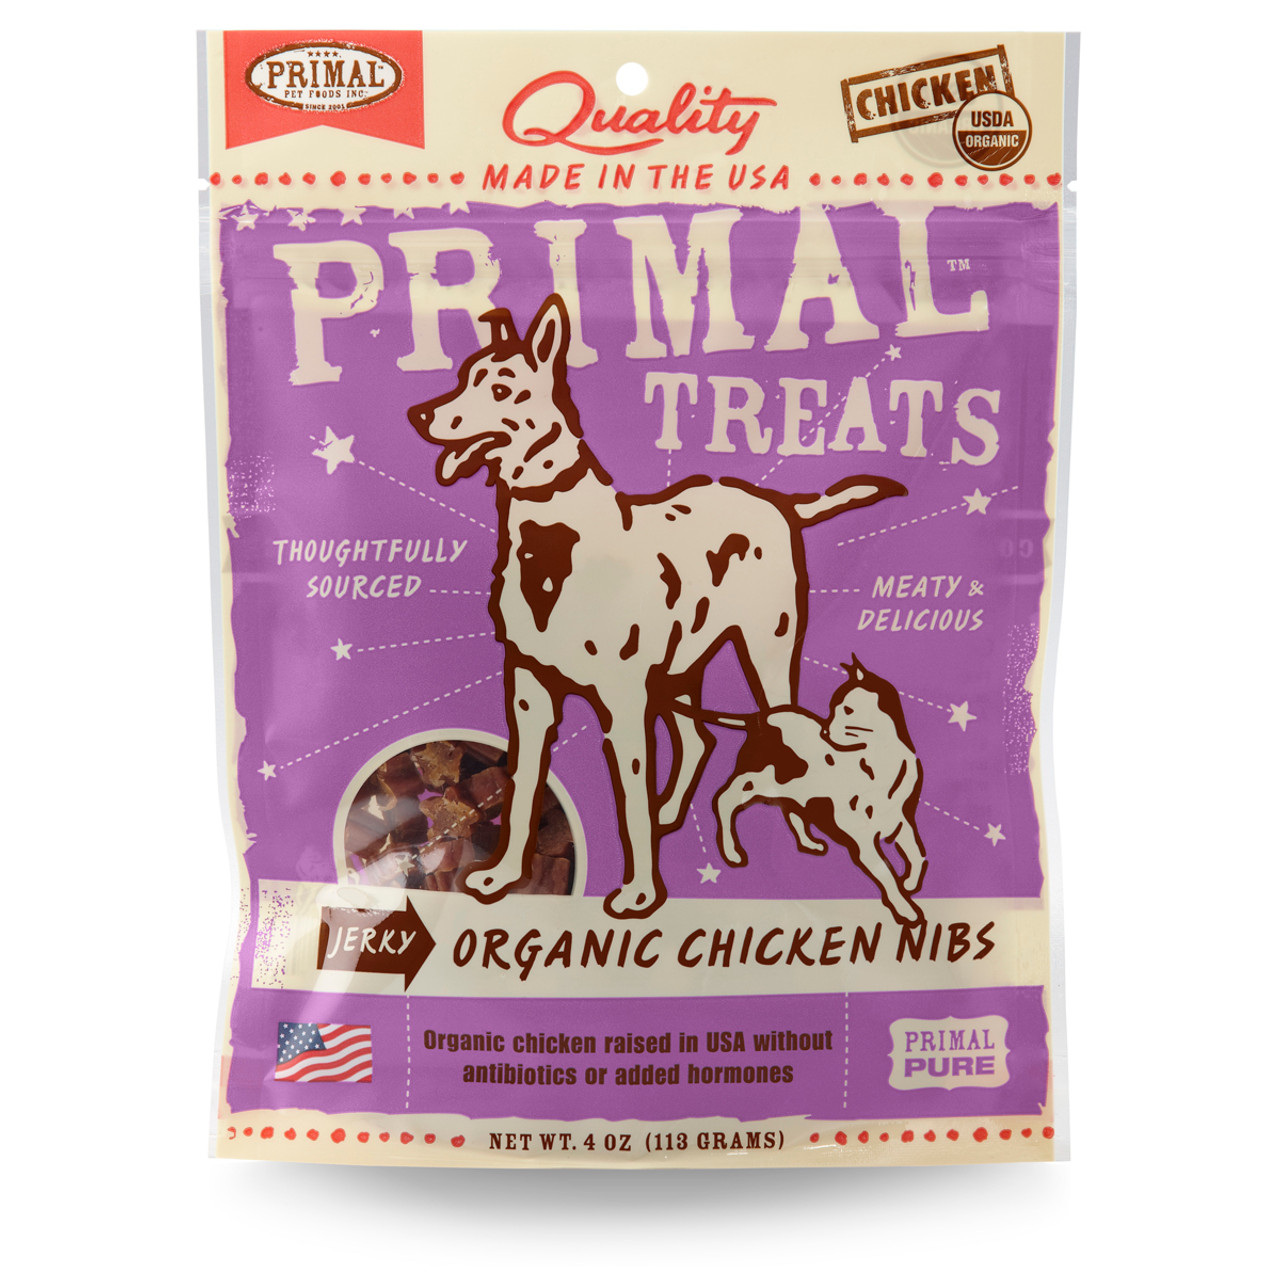 Primal Pet Foods Jerky Organic Chicken Nibs Dog & Cat Treats